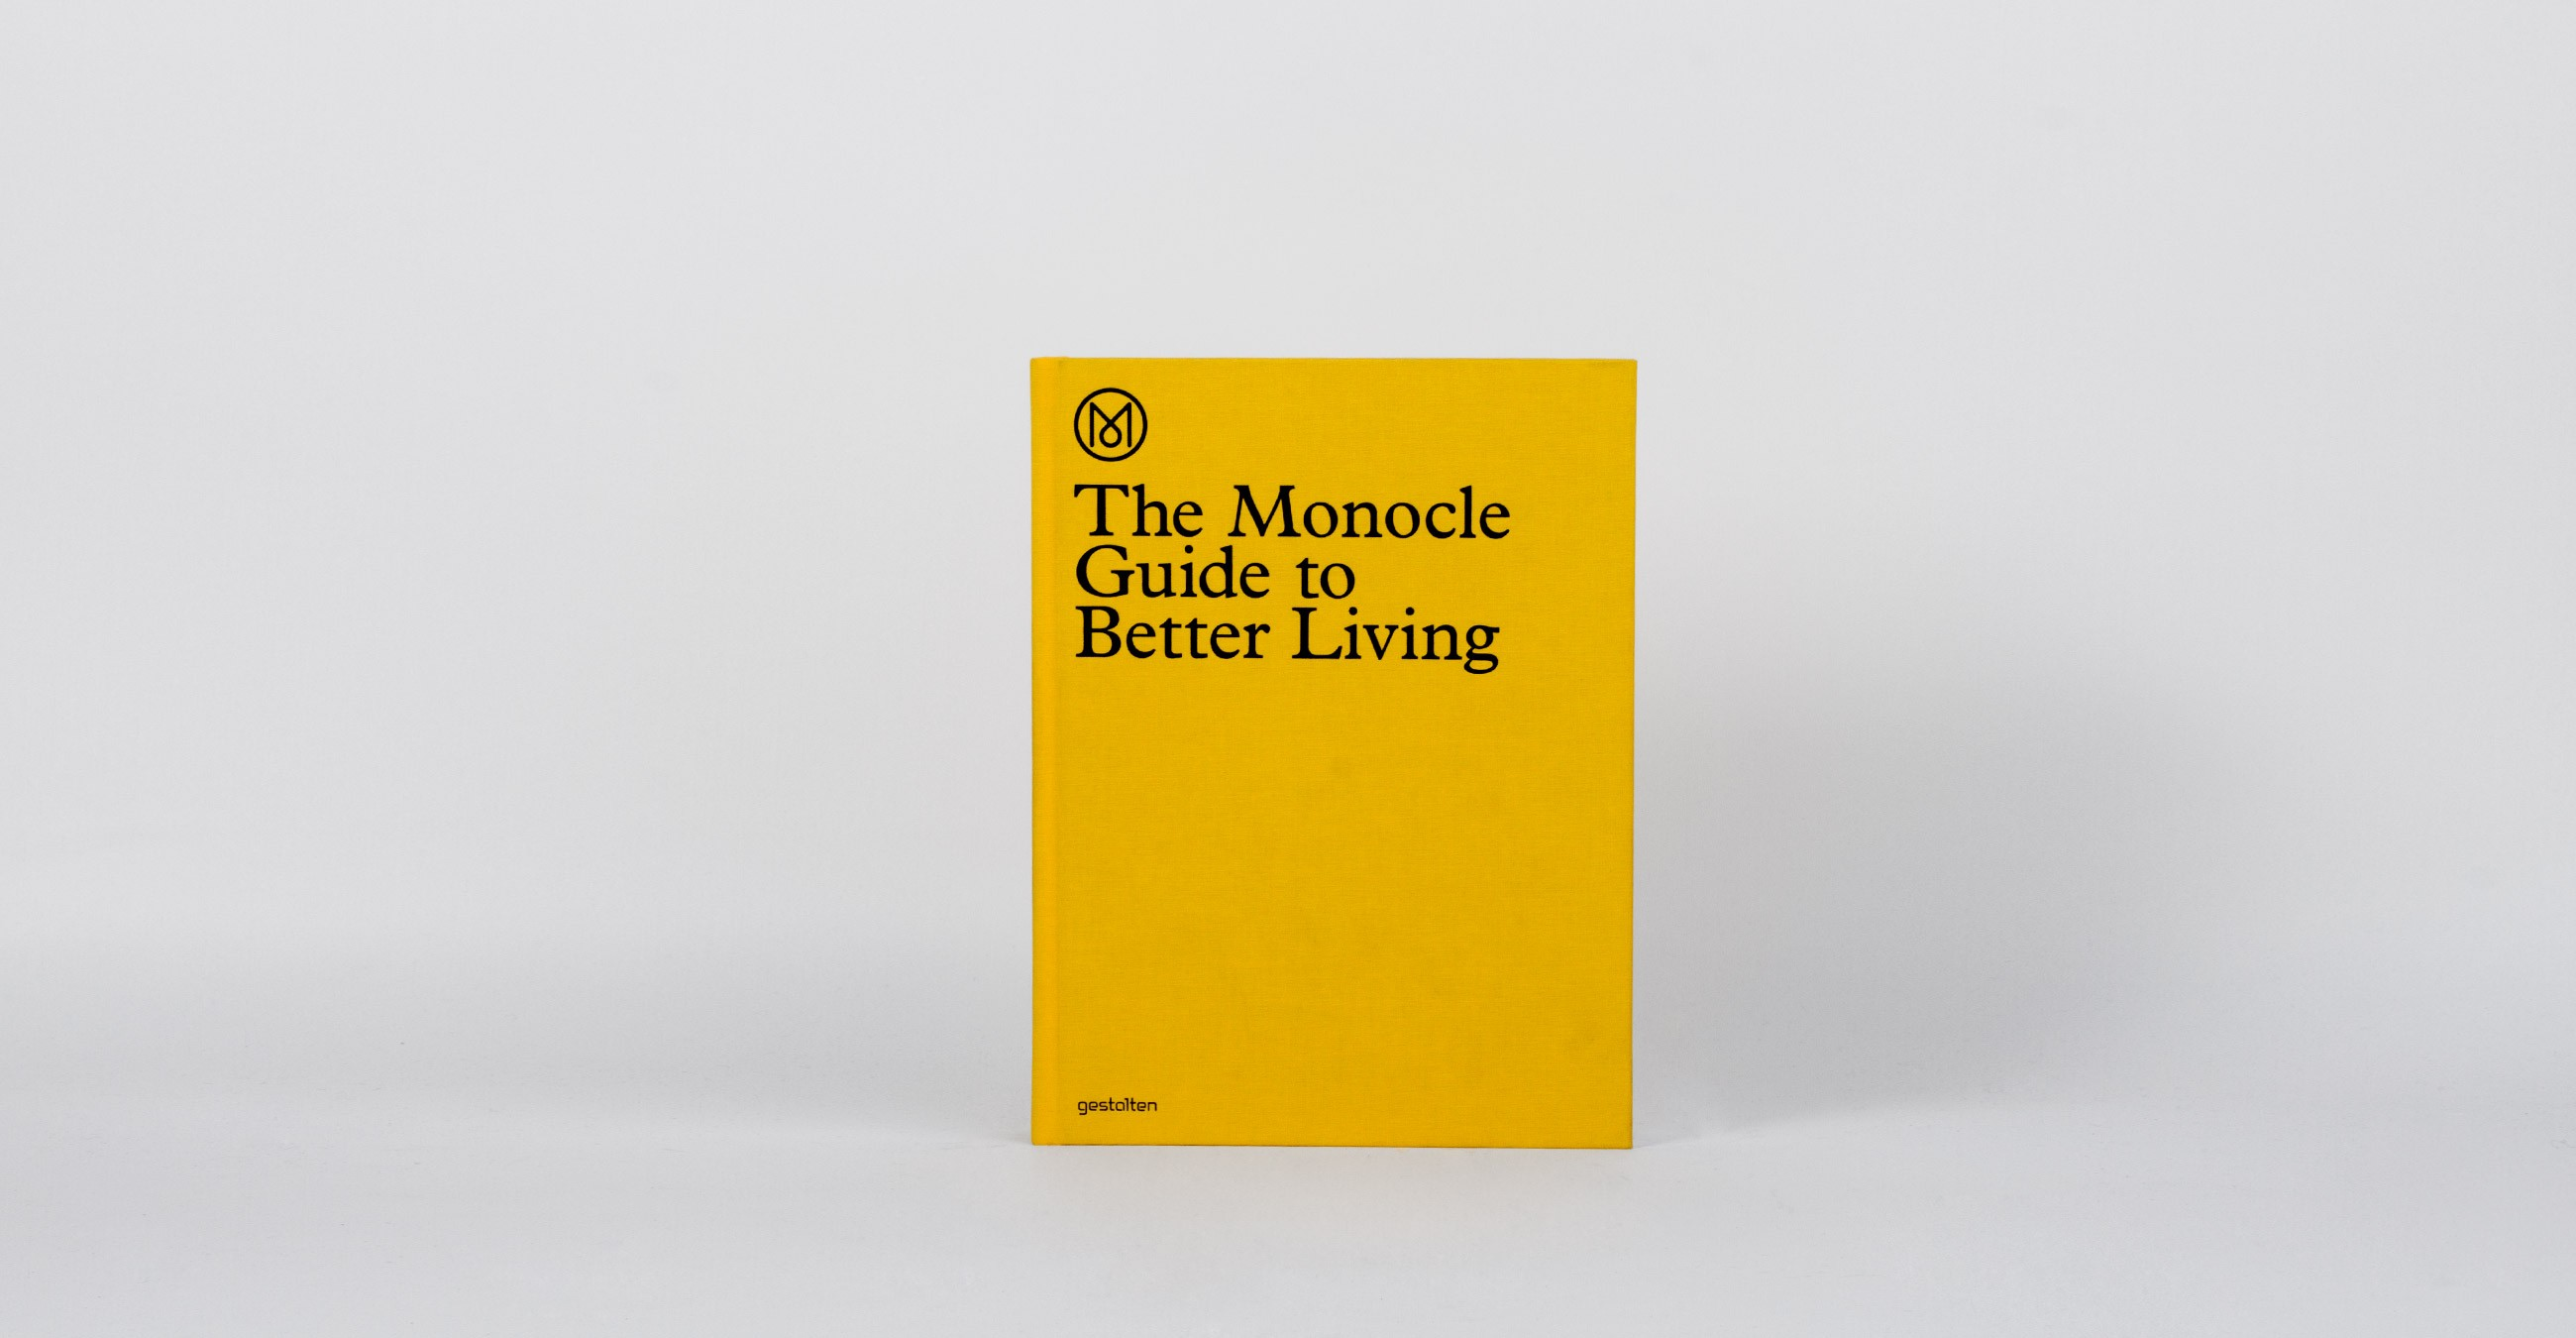 gestallten-the-monocle-guide-to-better-living-3_2